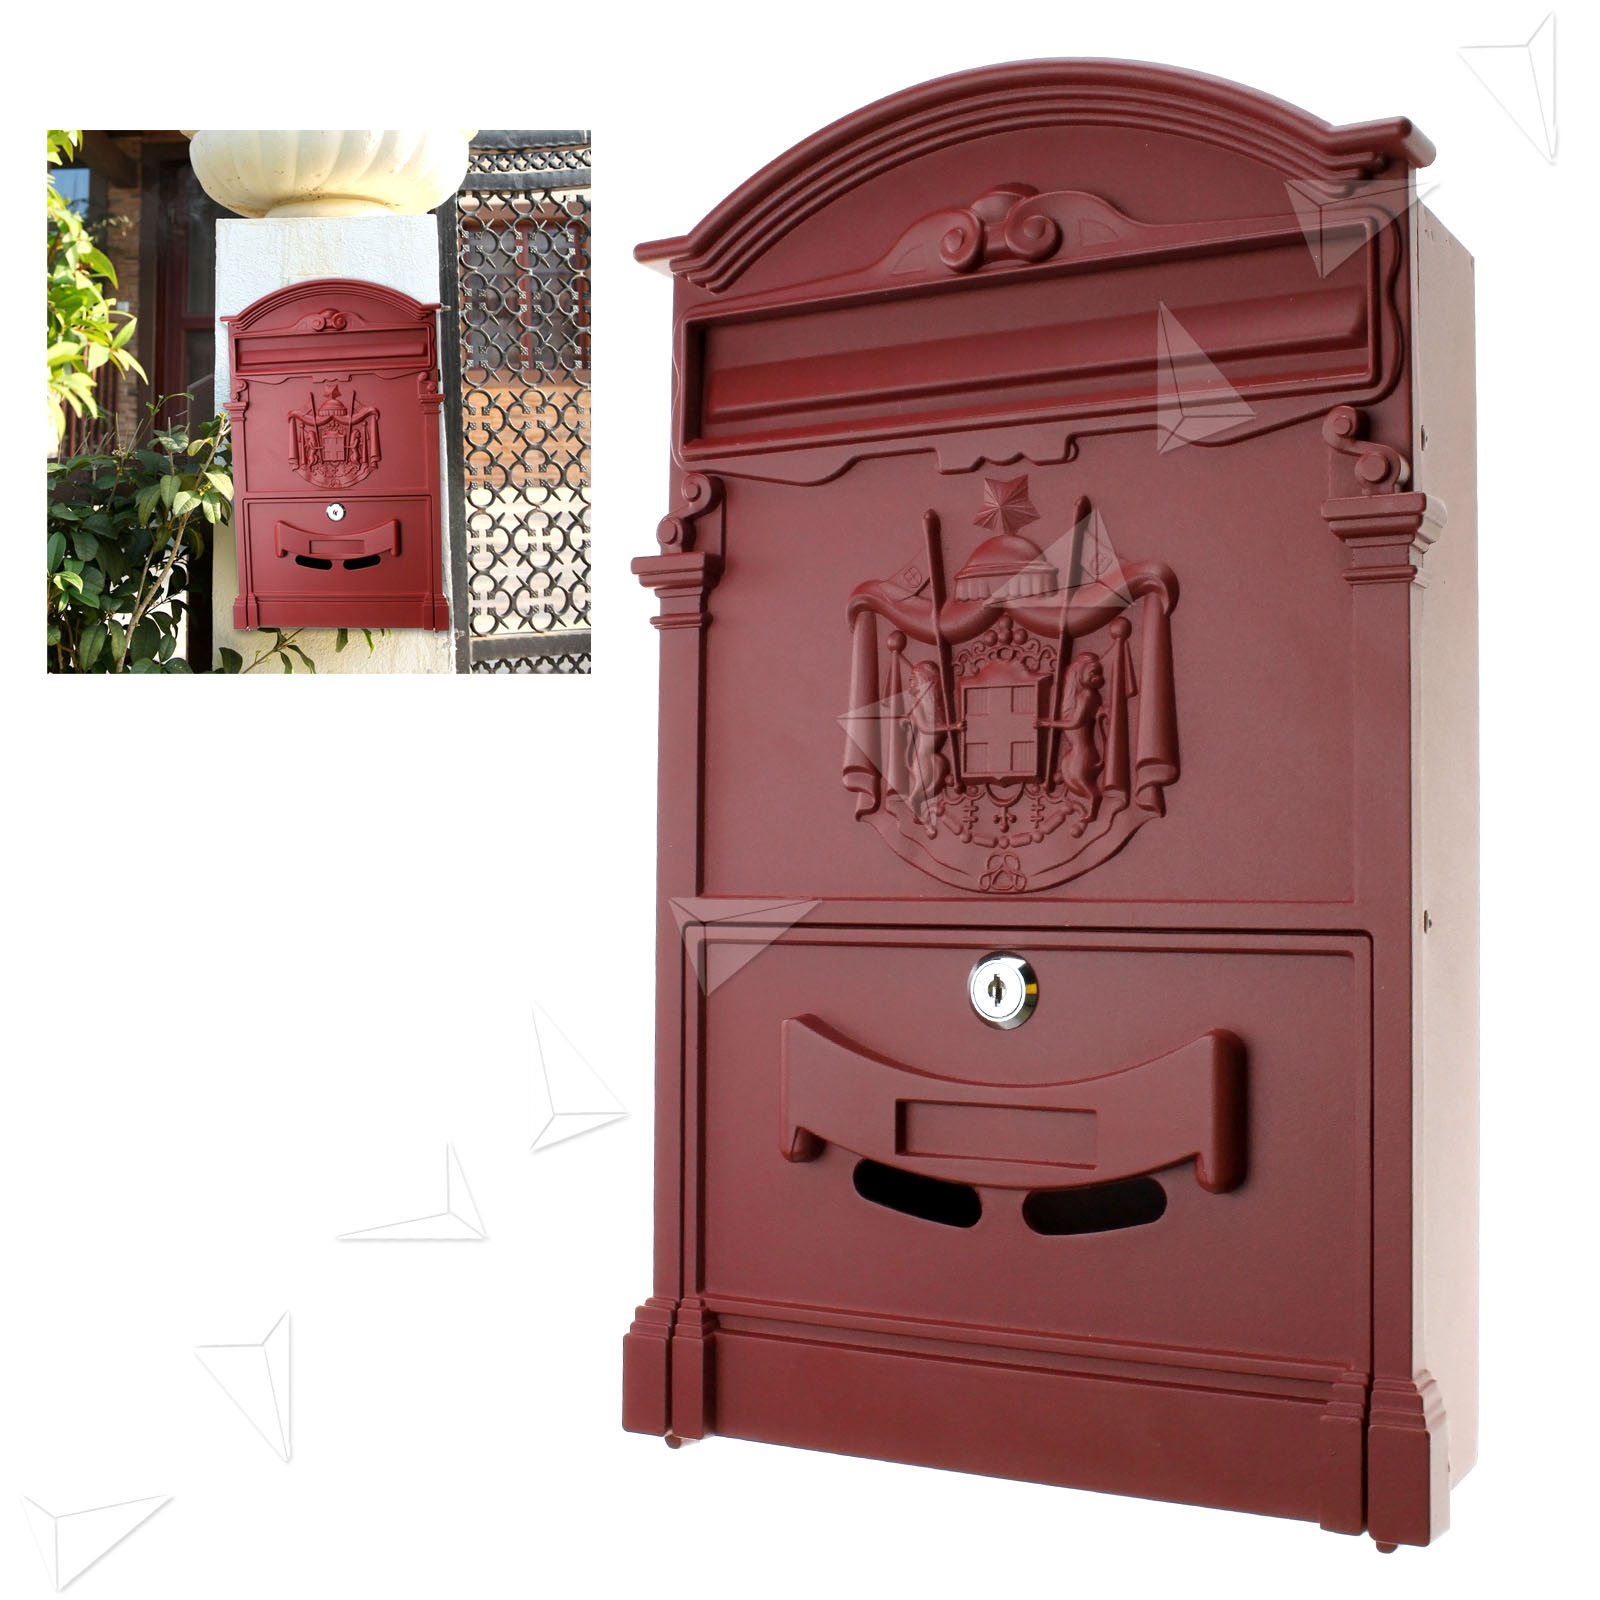 Aluminium Mail Box : Red letterbox mailbox letter mail post box wall mount cast